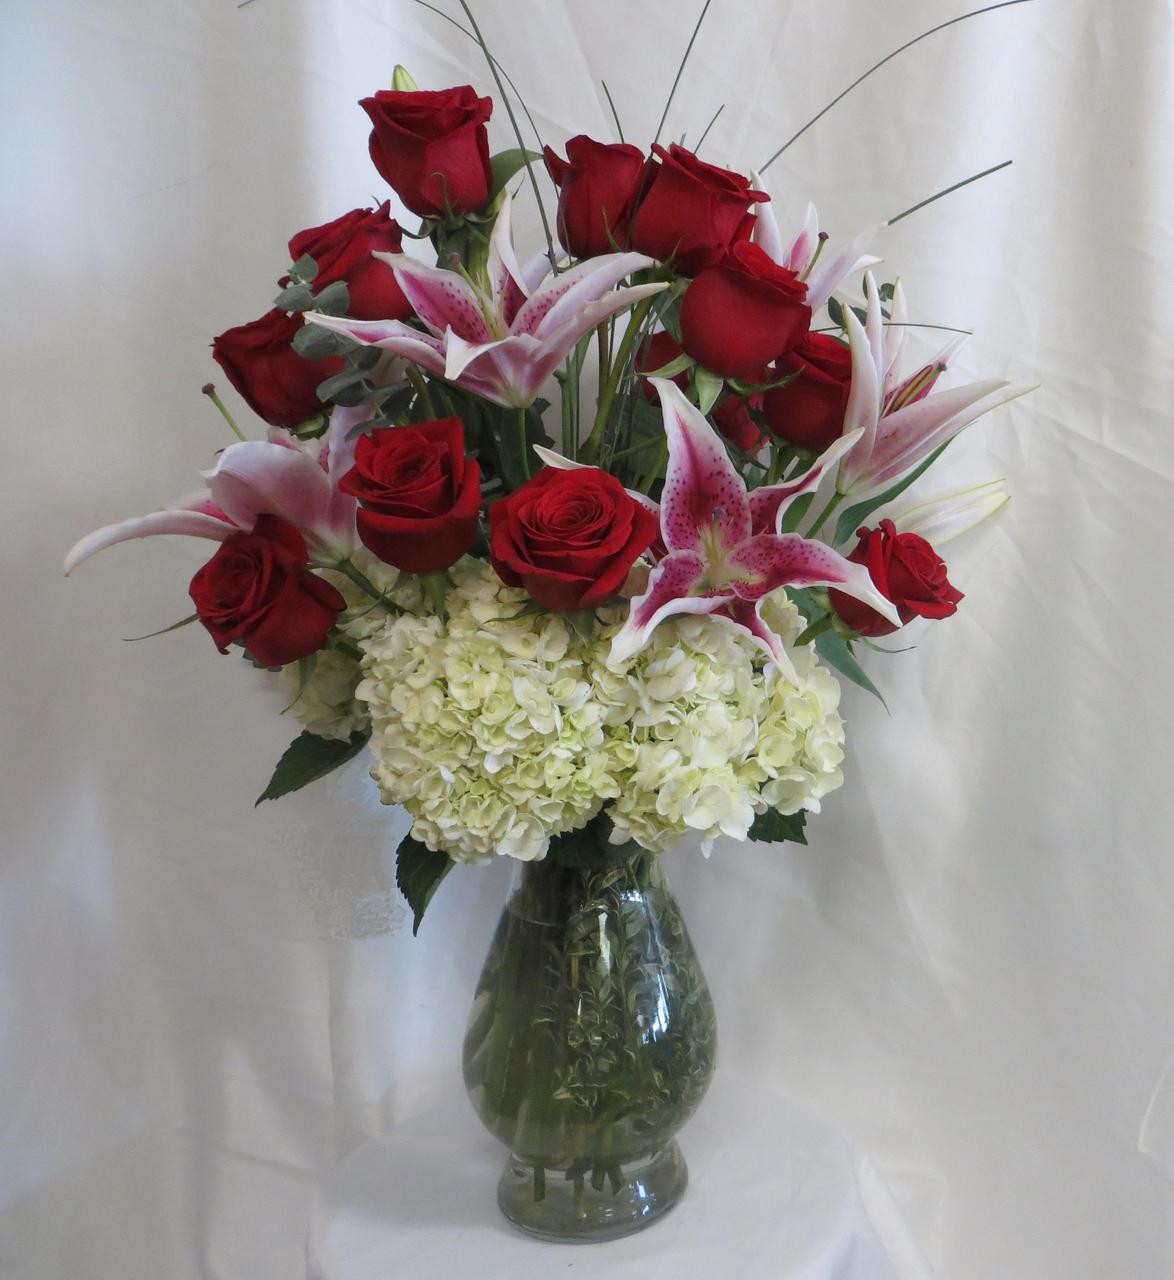 Dozen Red Roses White Hydrangeas Stargazer Lilies For